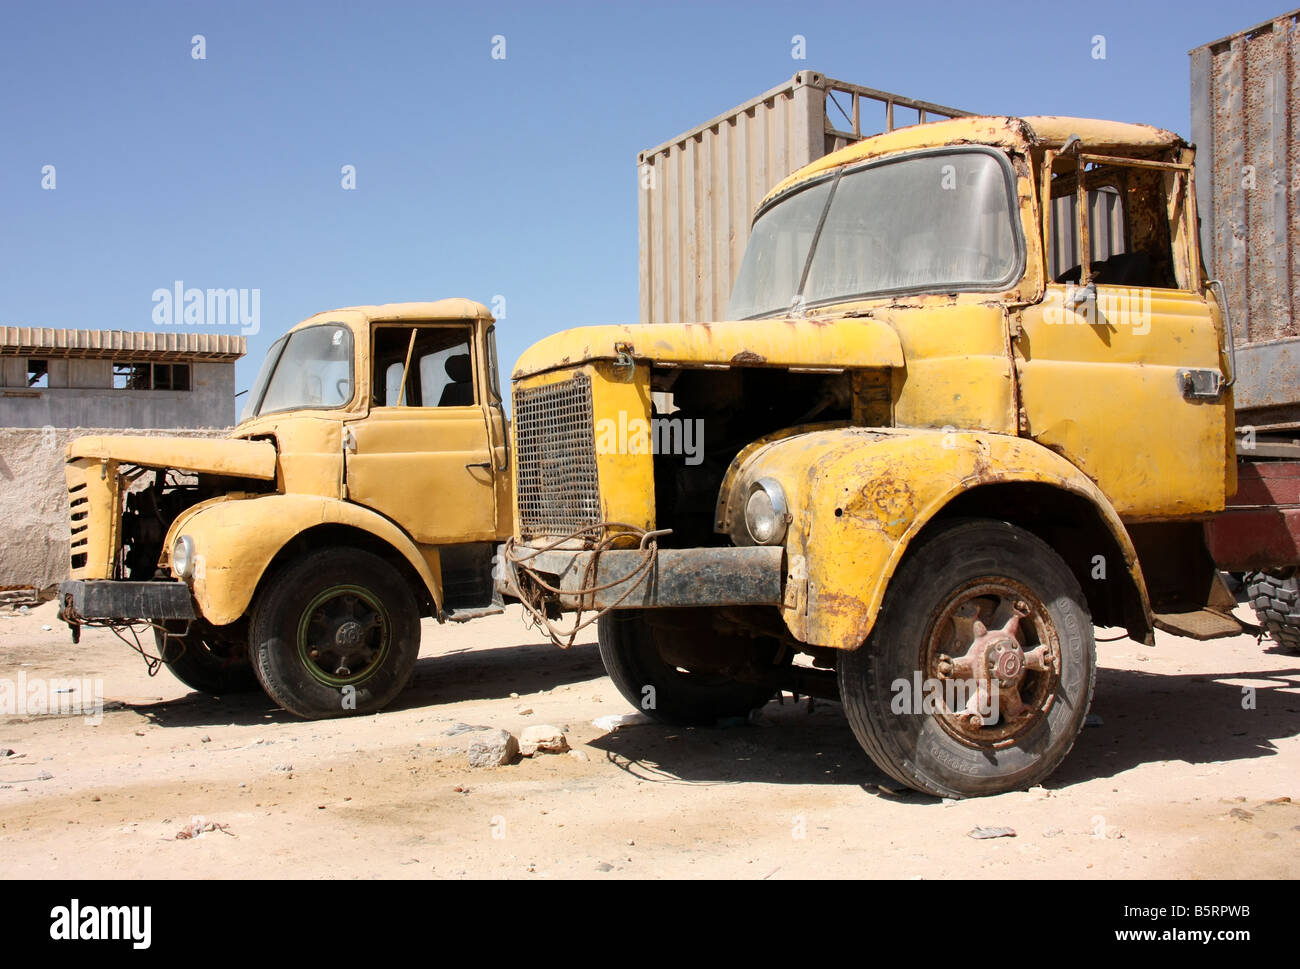 Battered French made trucks in Nouadhibou Mauritania Western Sahara Stock Photo